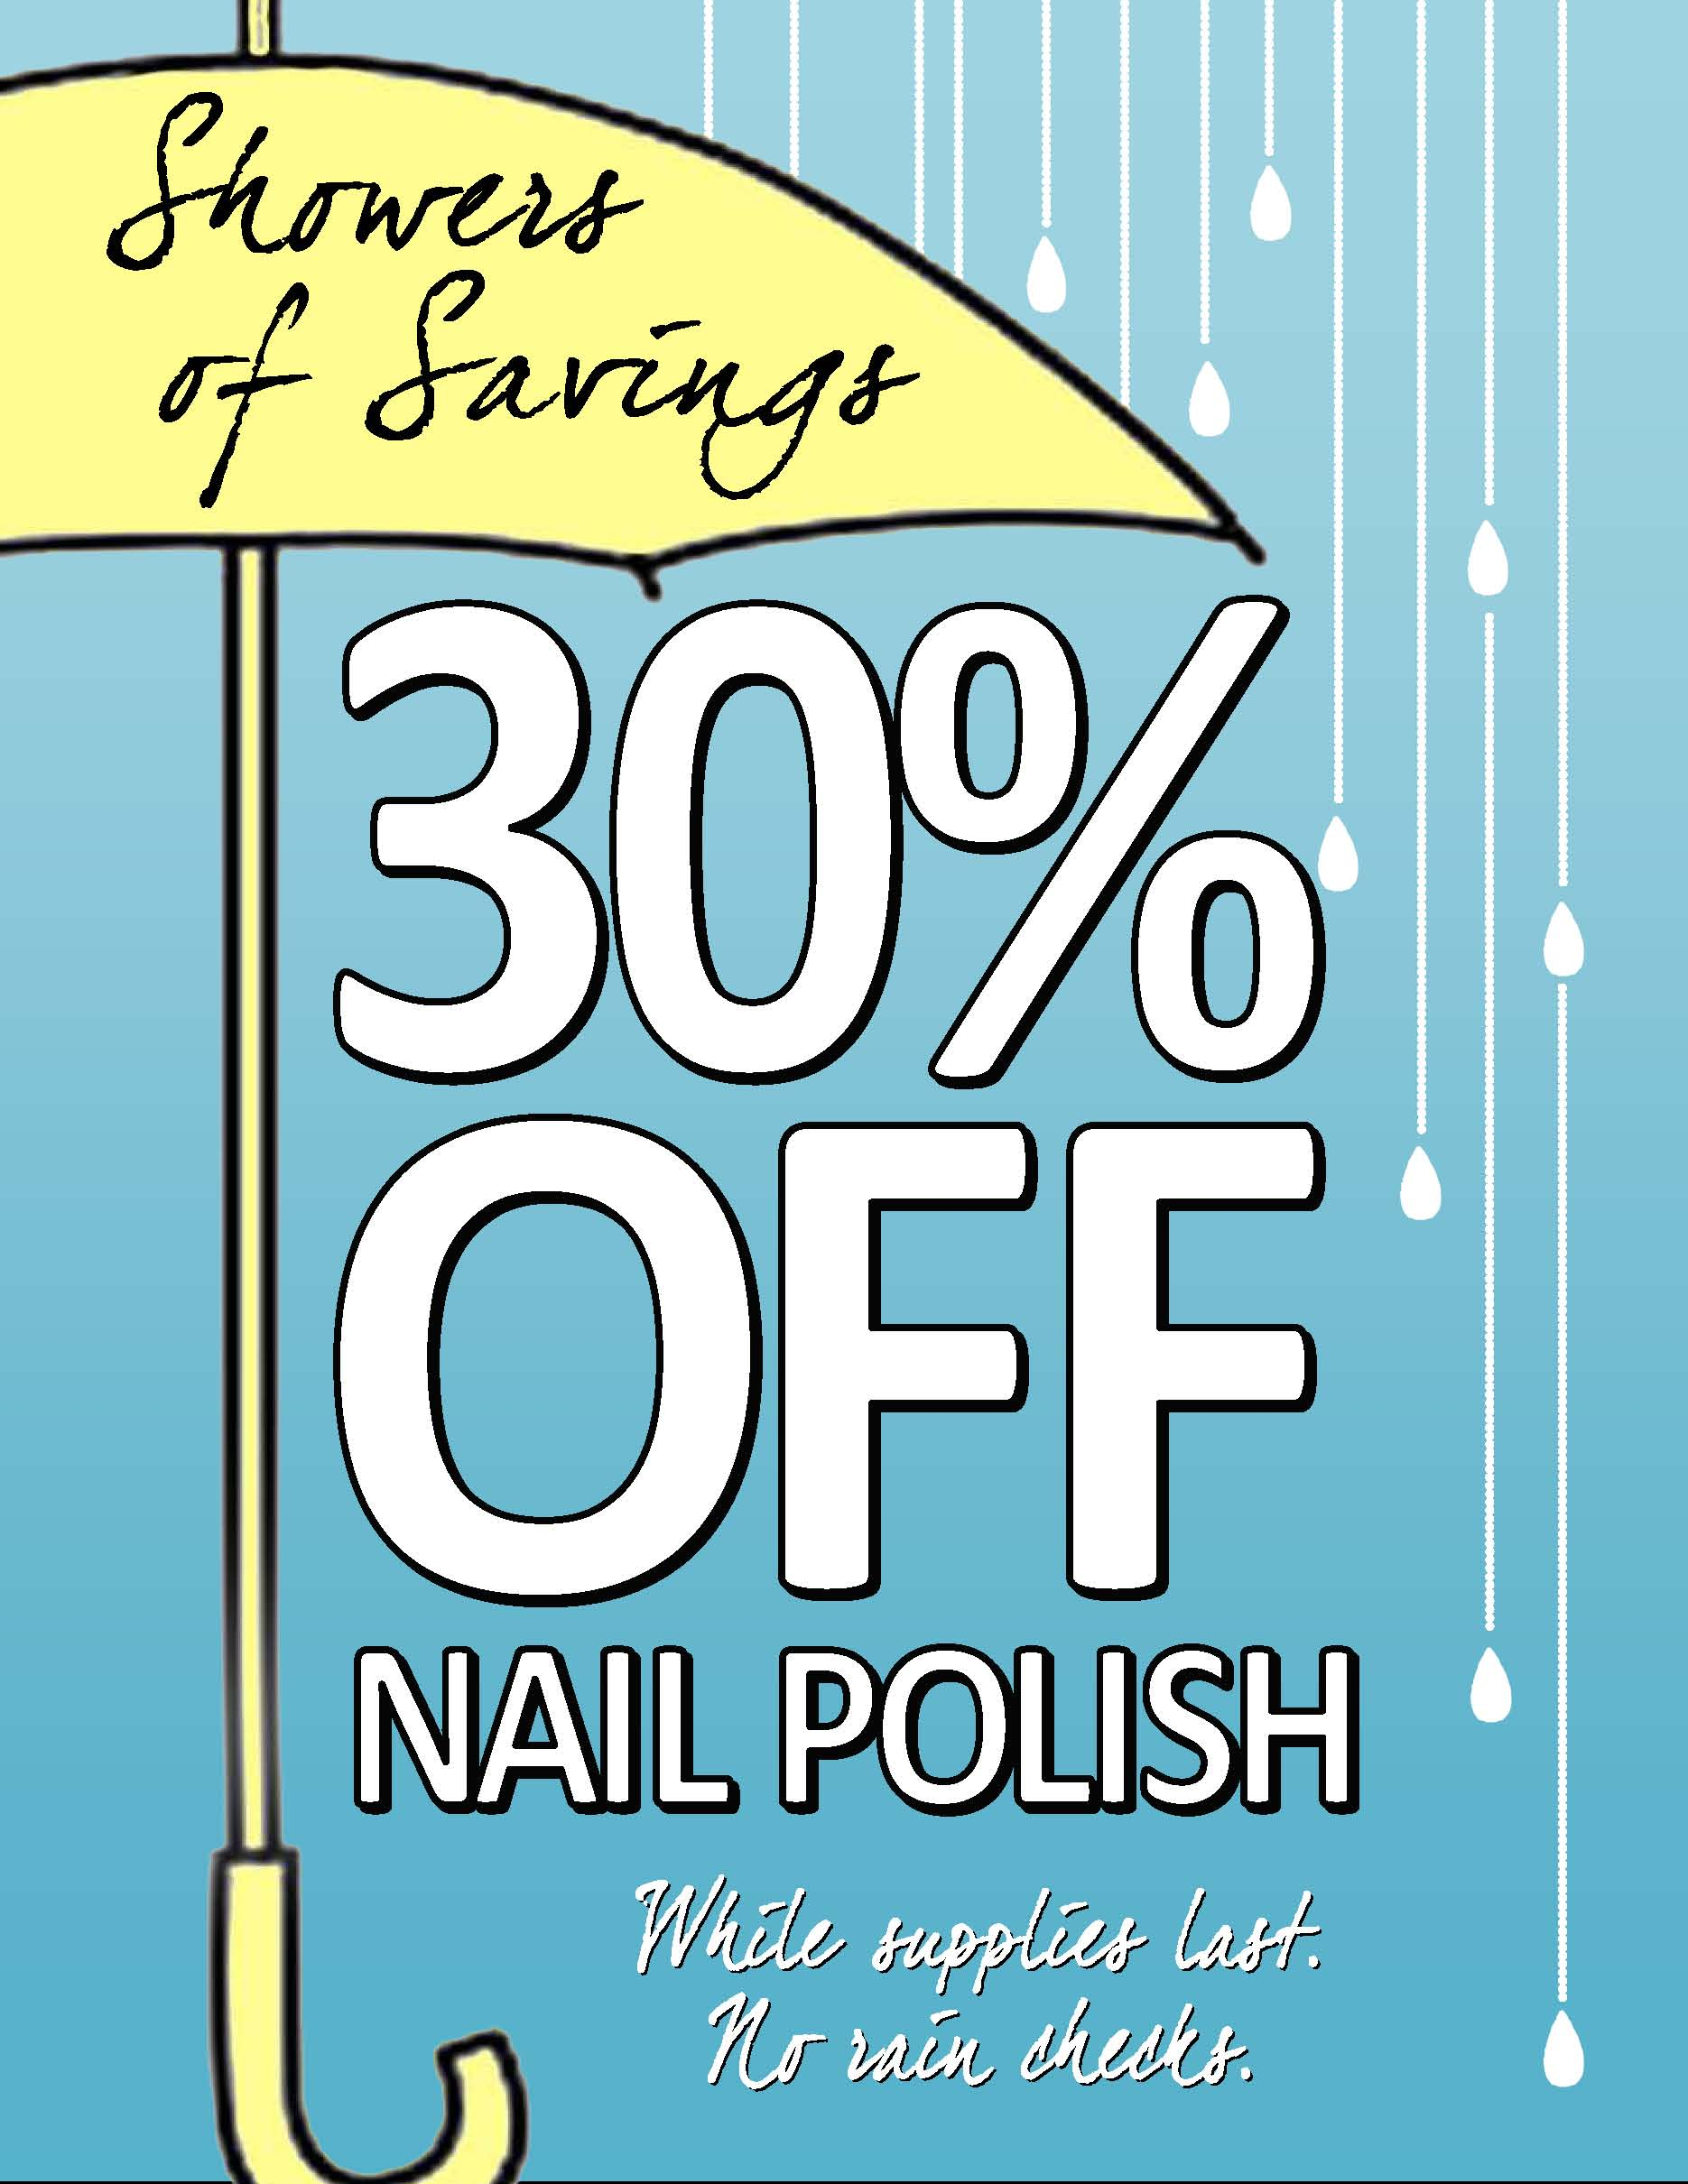 Showers of Savings! Enjoy 30% Off Makeup and Nail Polish — Ladies ...